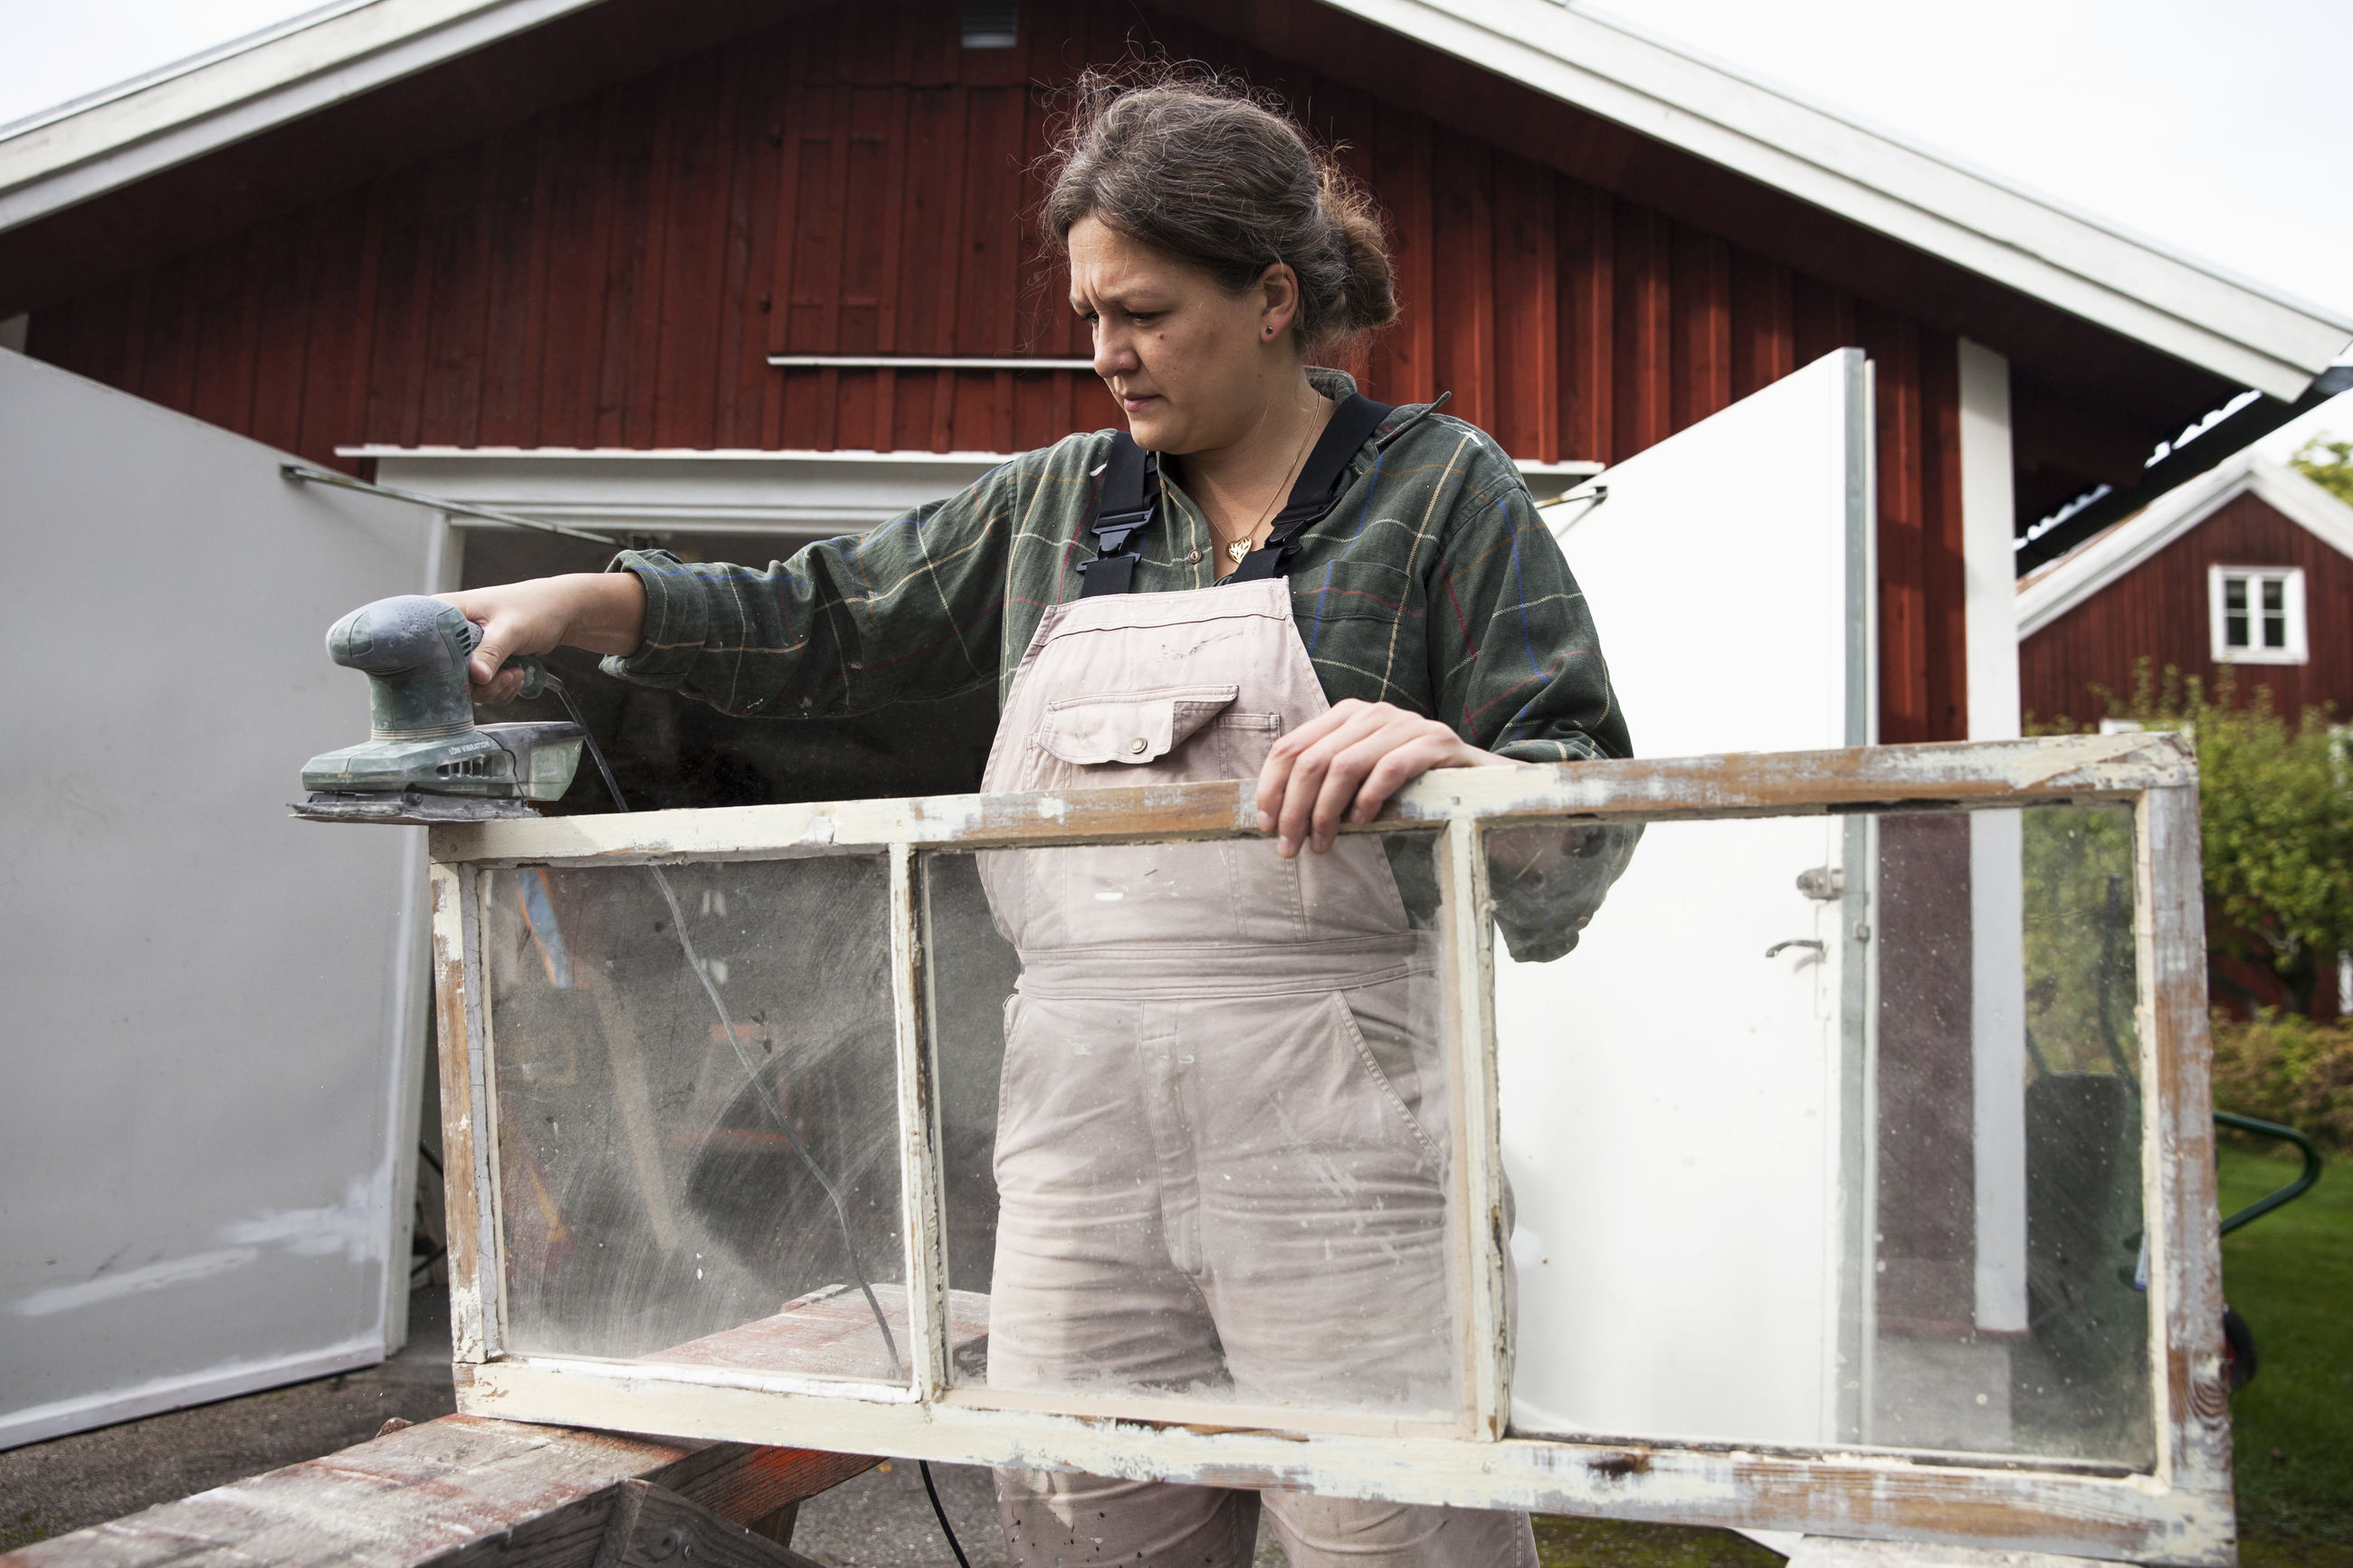 Female upholsterer using sander on window frame outside workshop